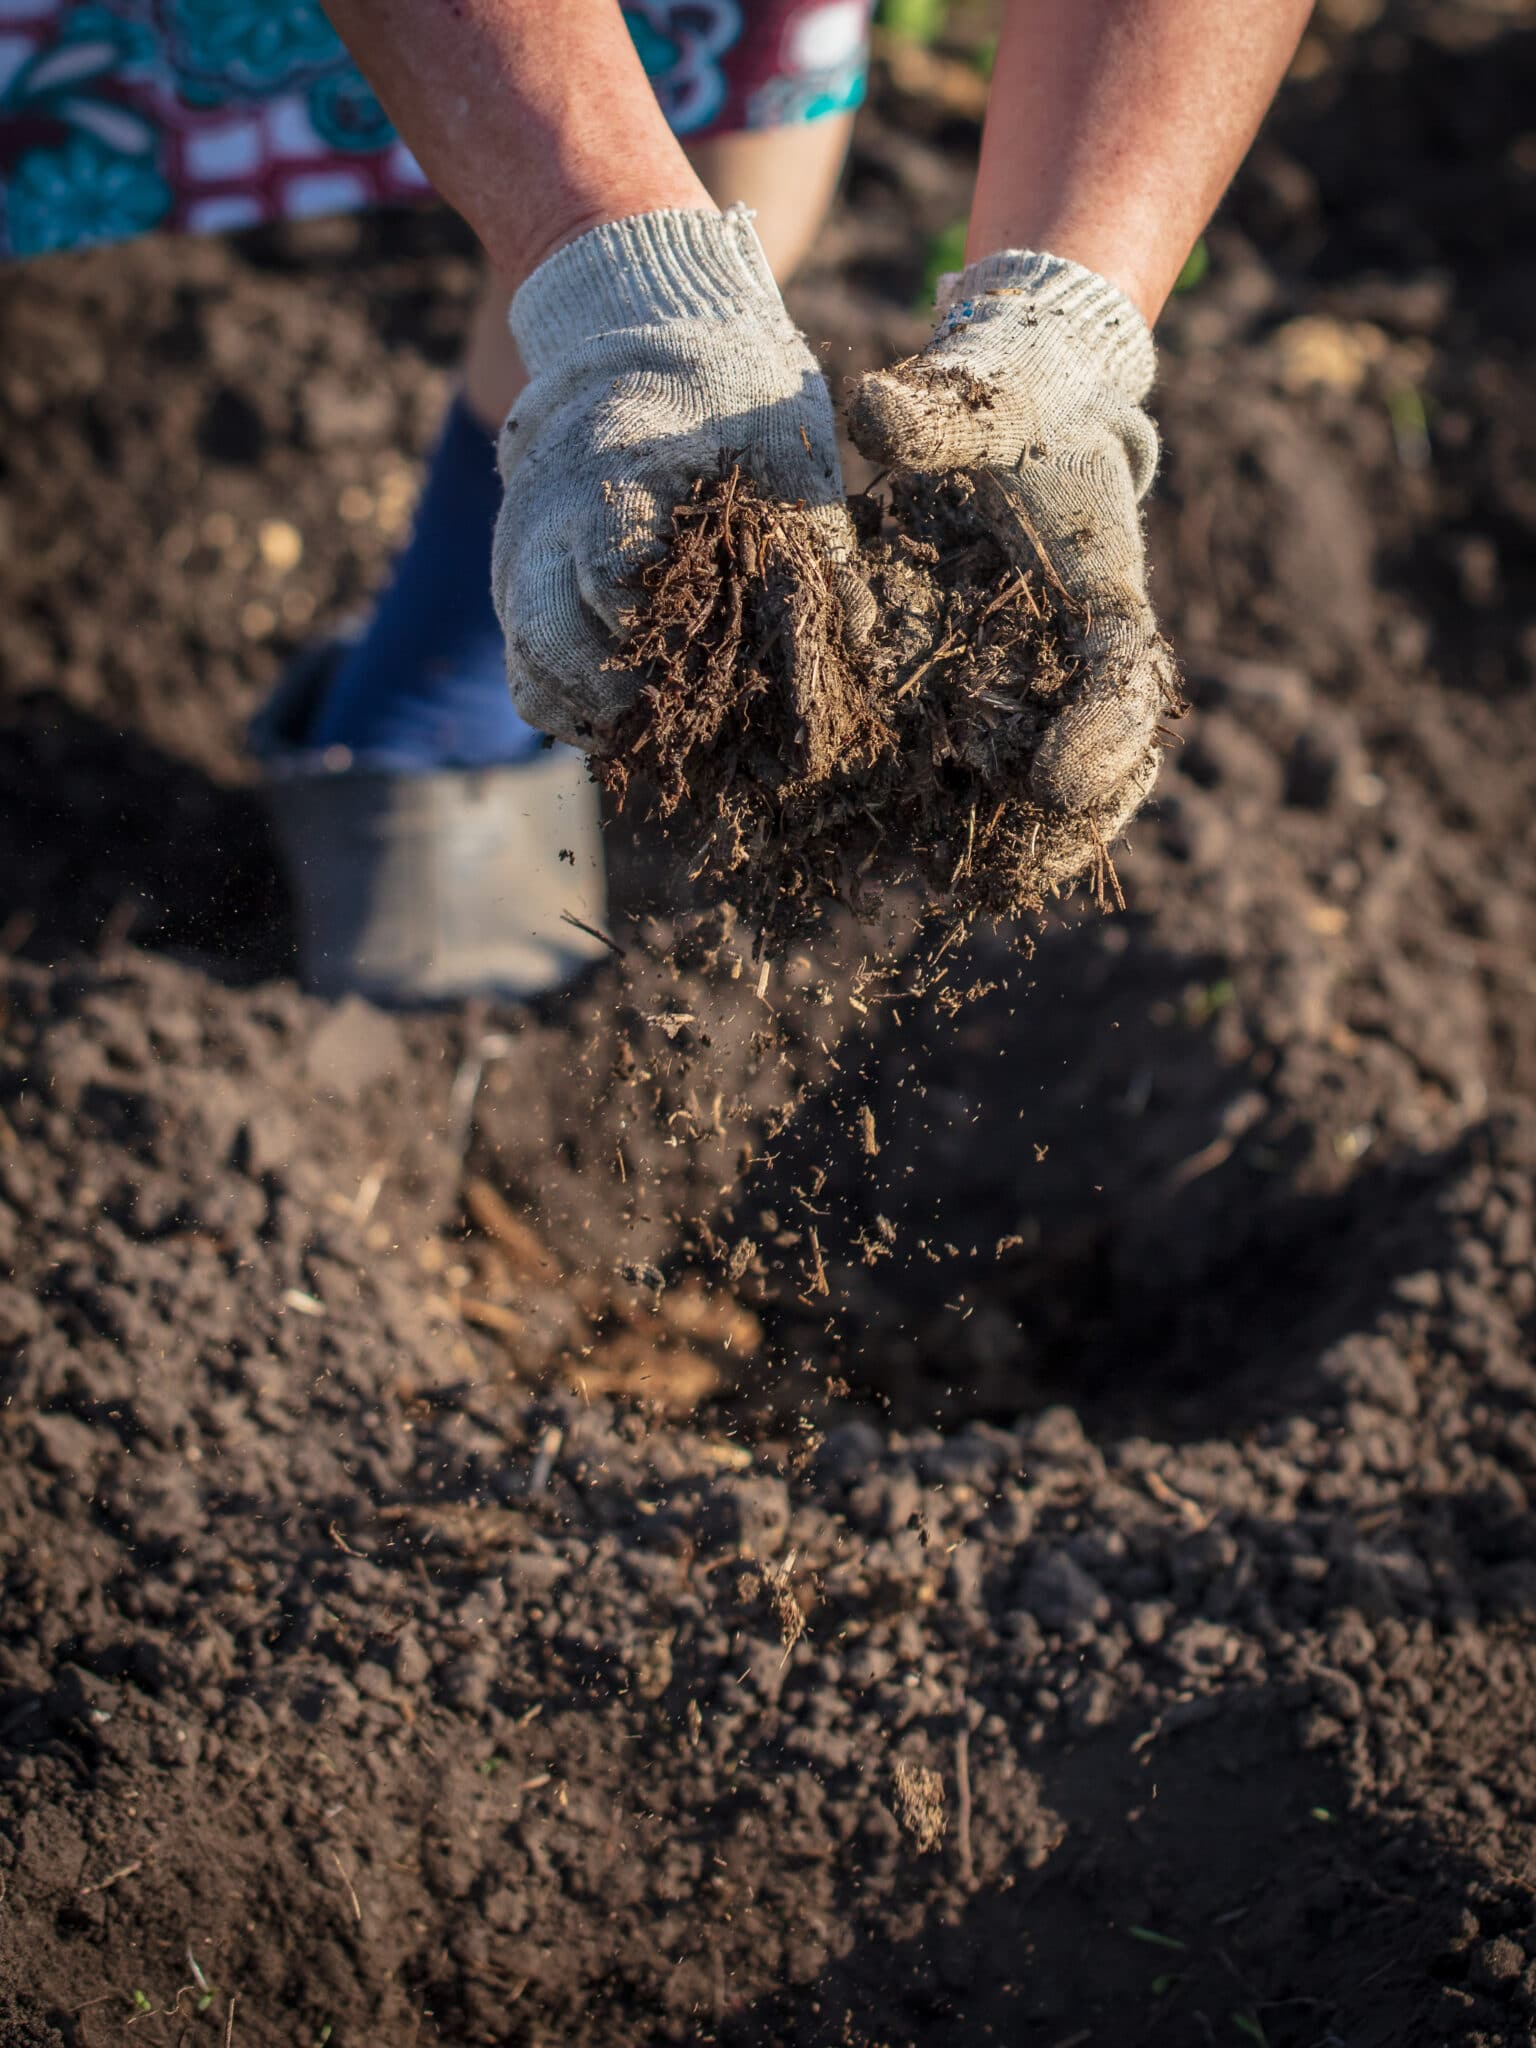 A gardener spreading manure by hand.